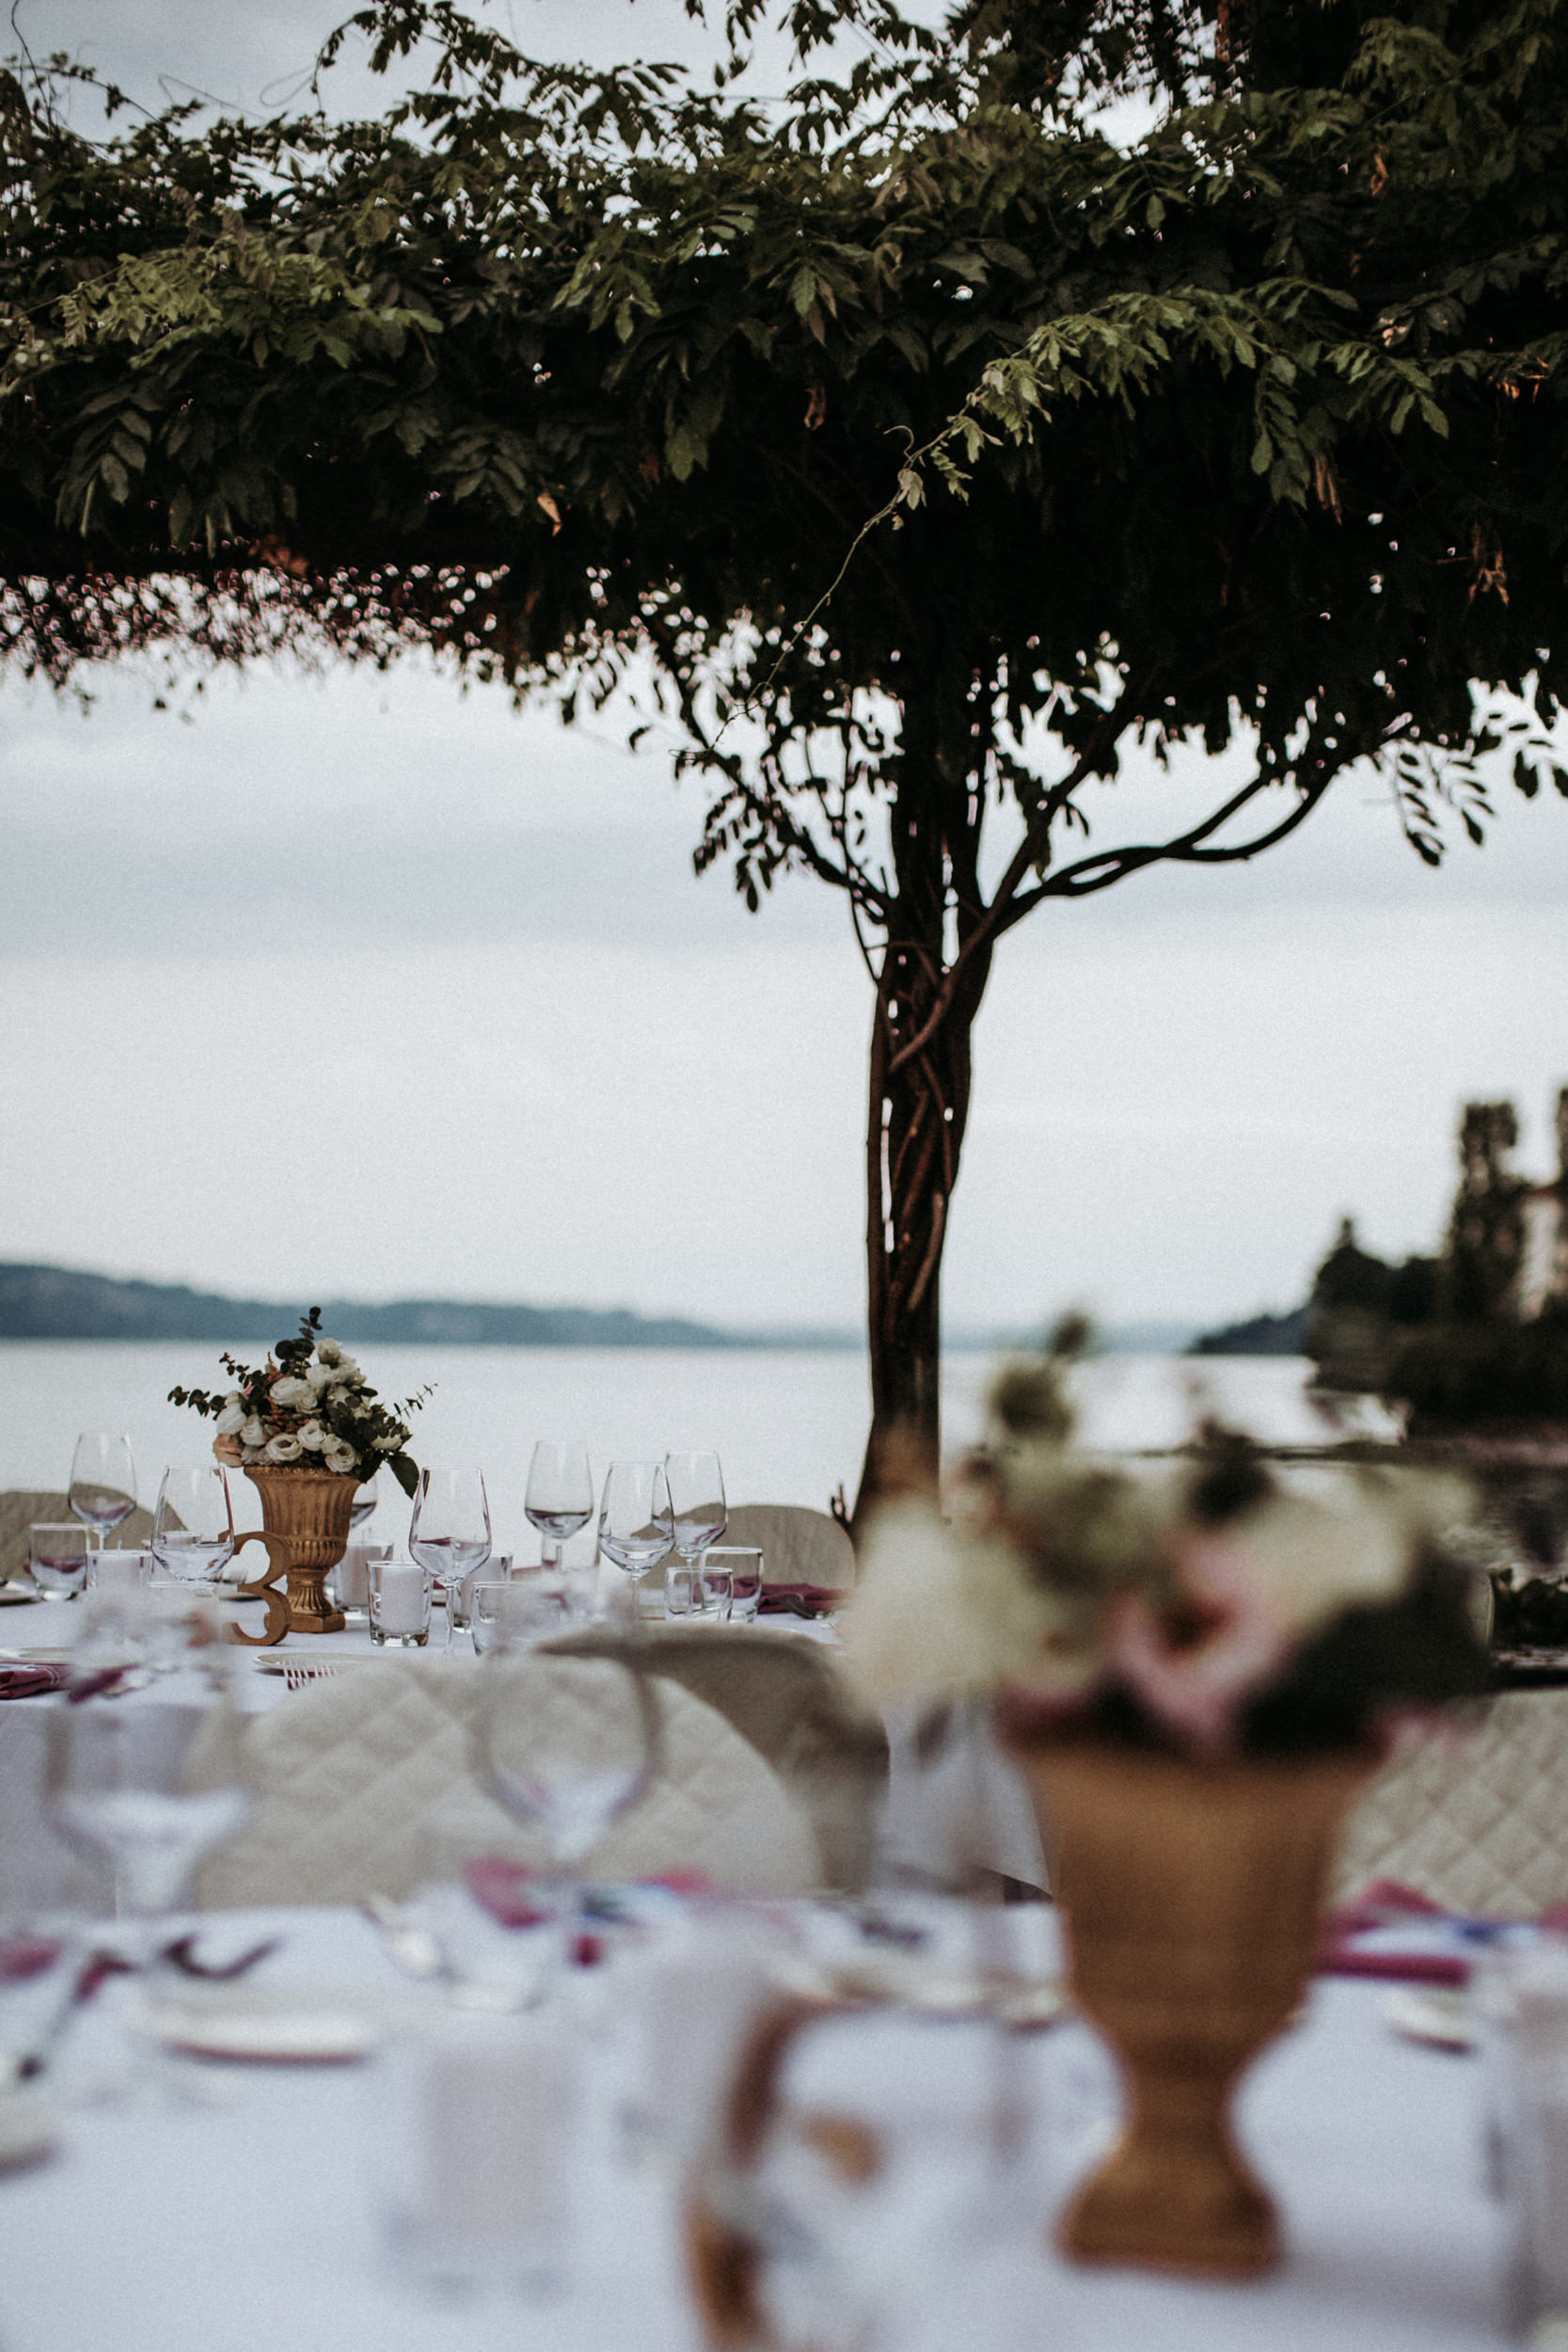 dm_photography_Lago Maggiore_Wed_261